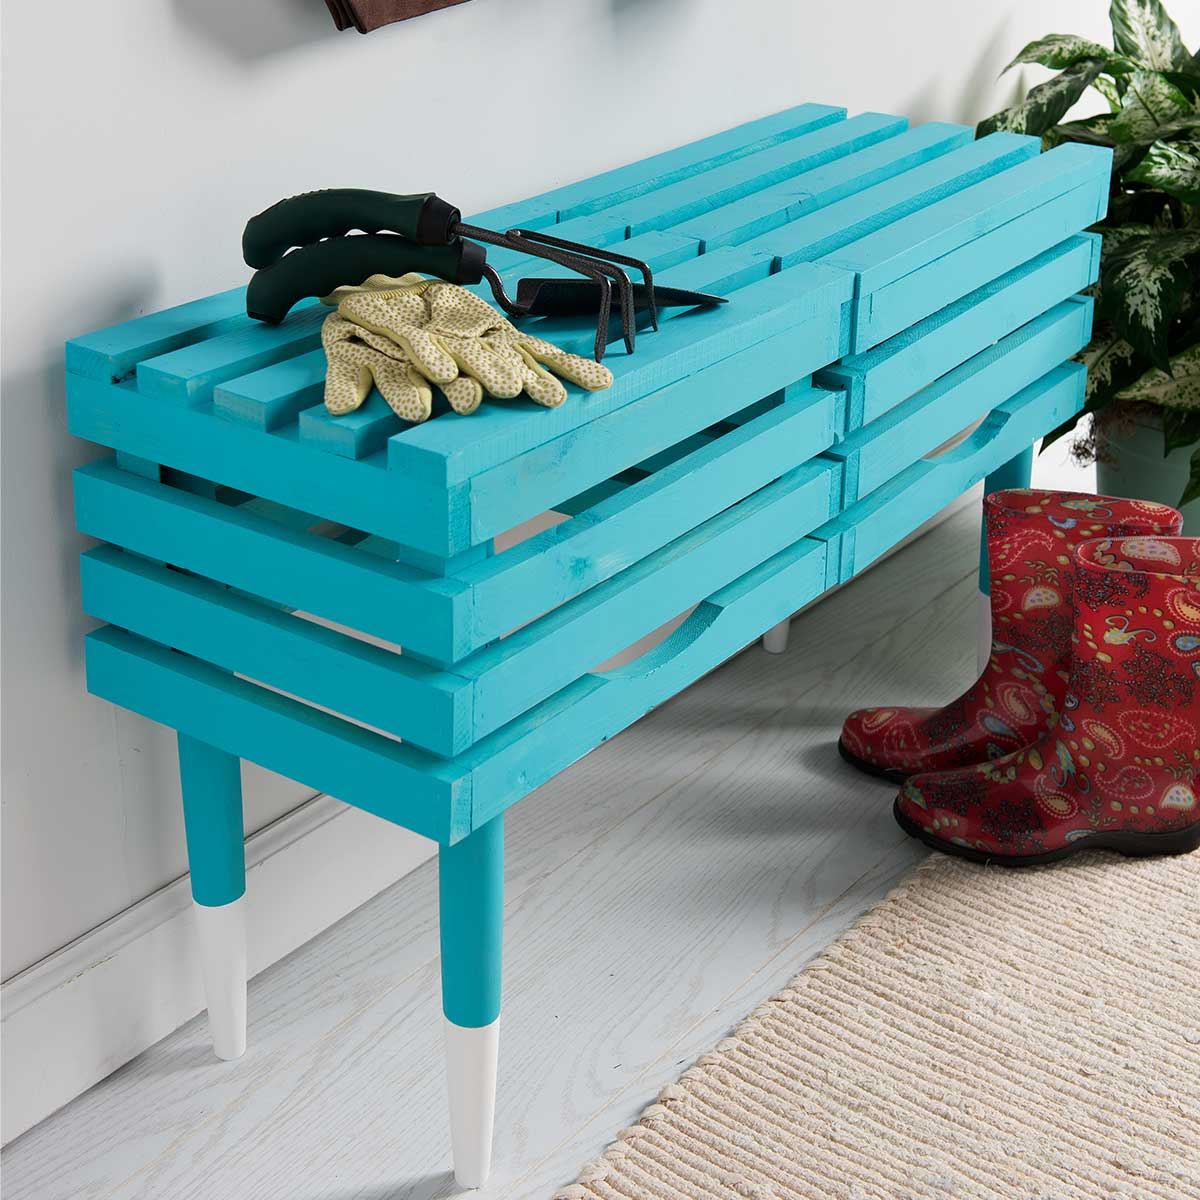 Crate Bench